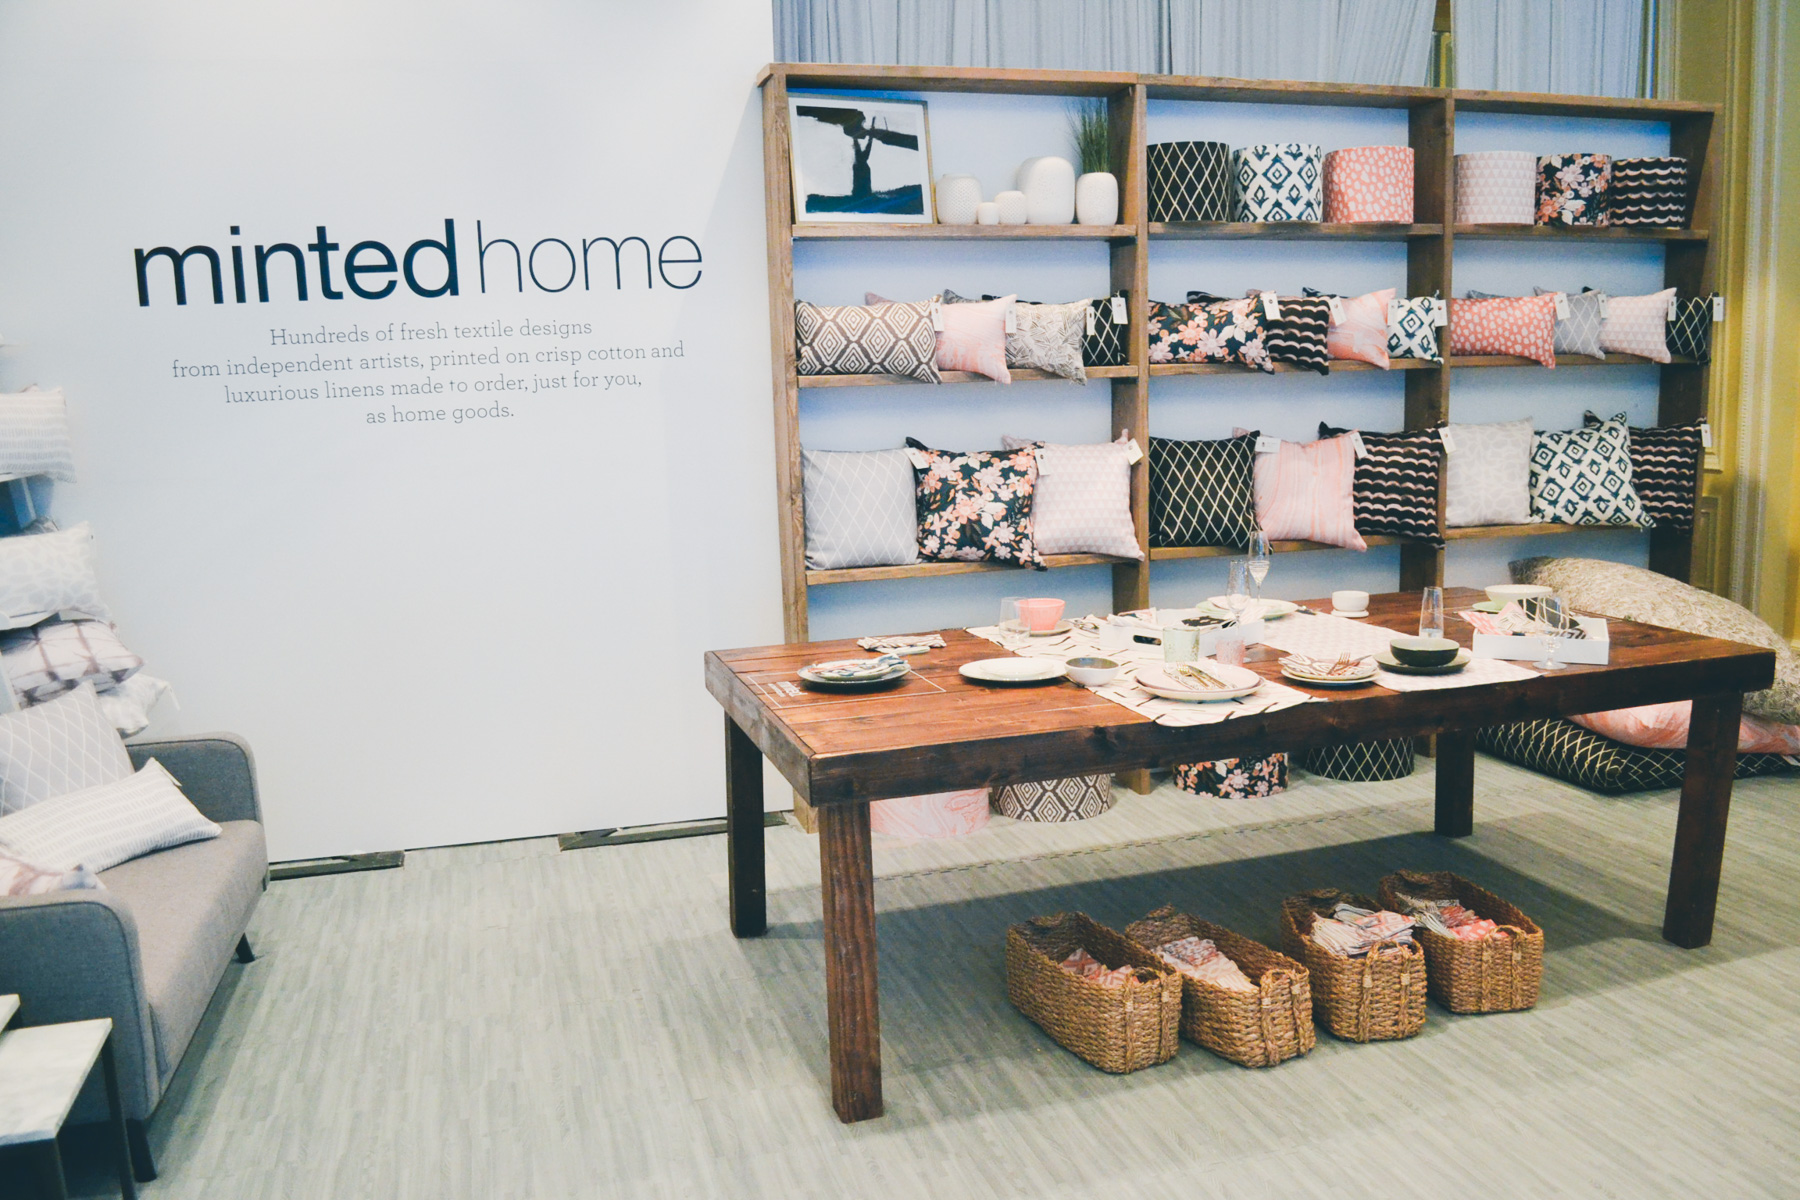 Minted Home pillows display room at Alt Summit 2016